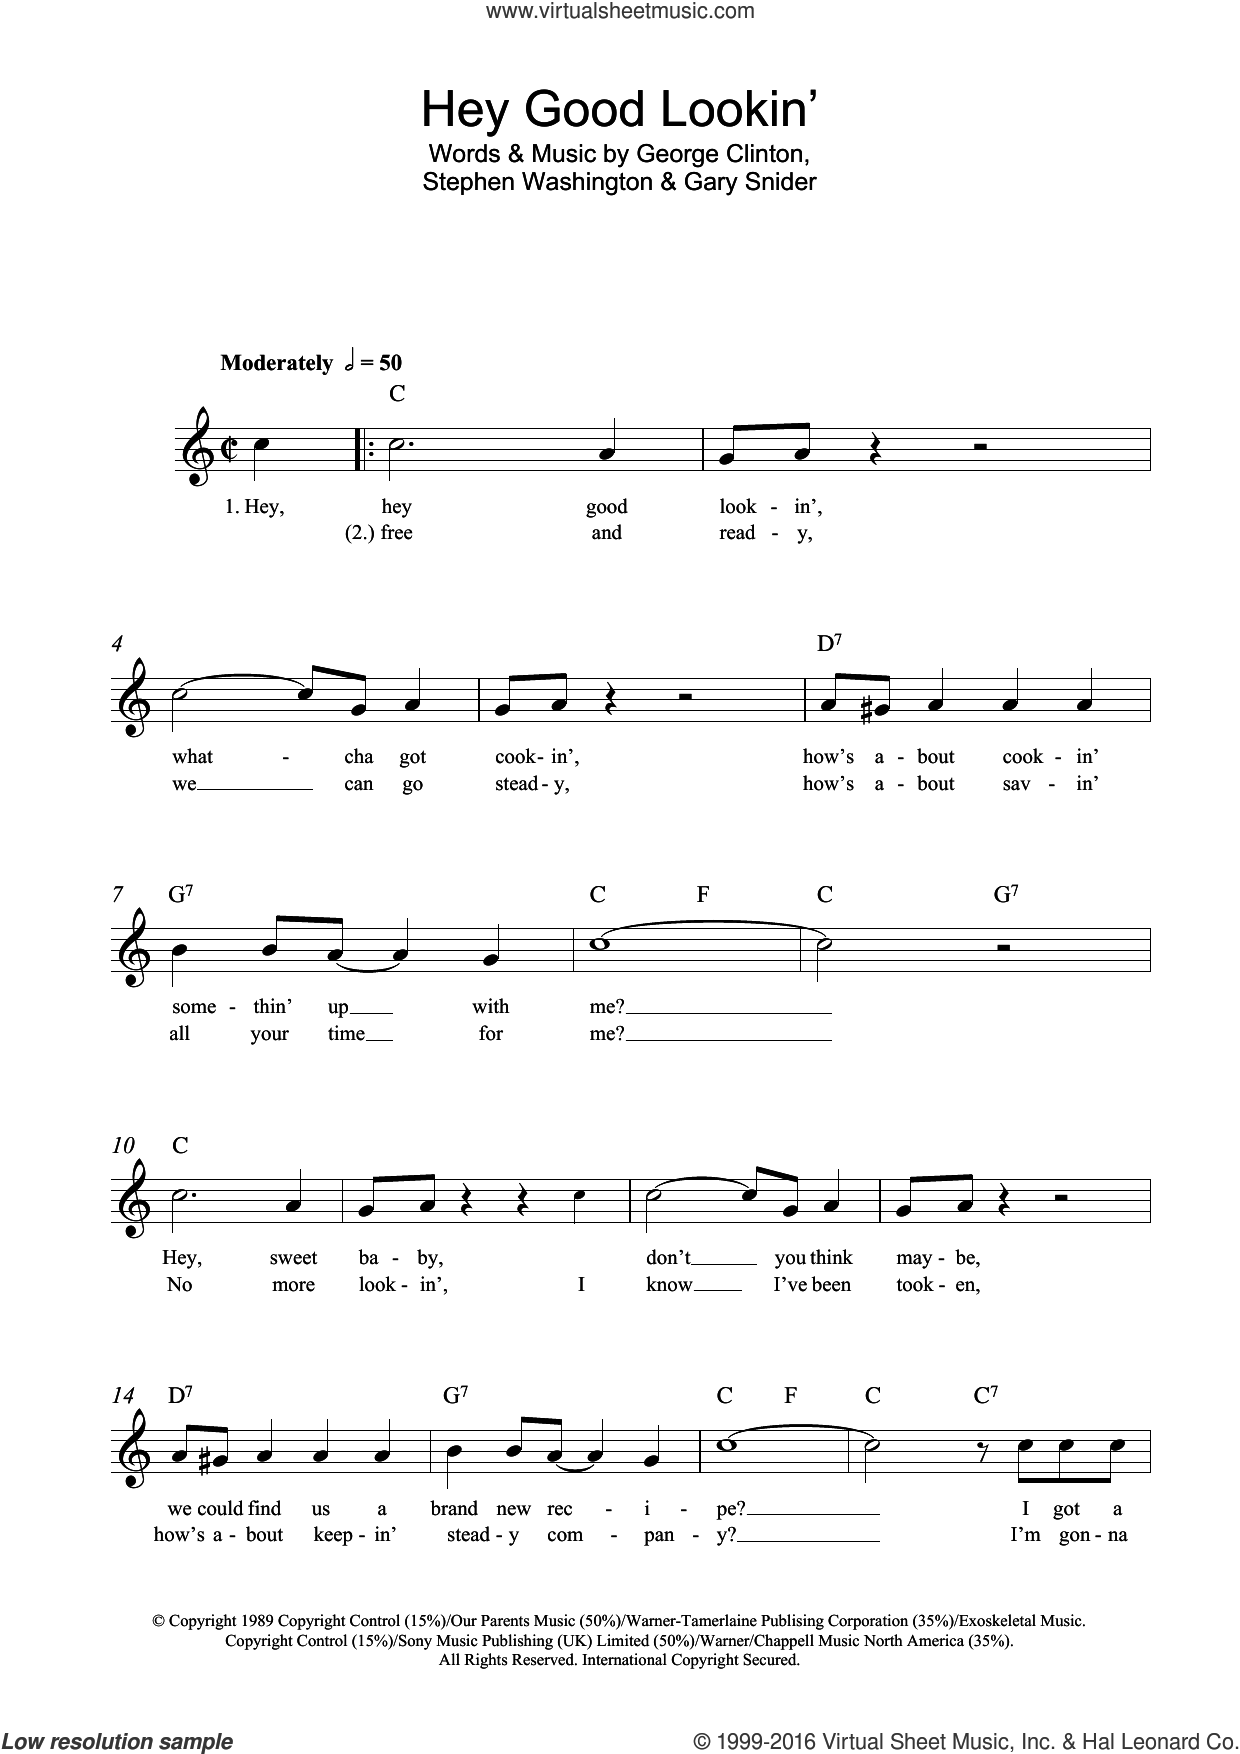 Hey Good Lookin' sheet music for voice and other instruments (fake book) by Hank Williams, Gary Snider, George Clinton and Stephen Washington, intermediate skill level